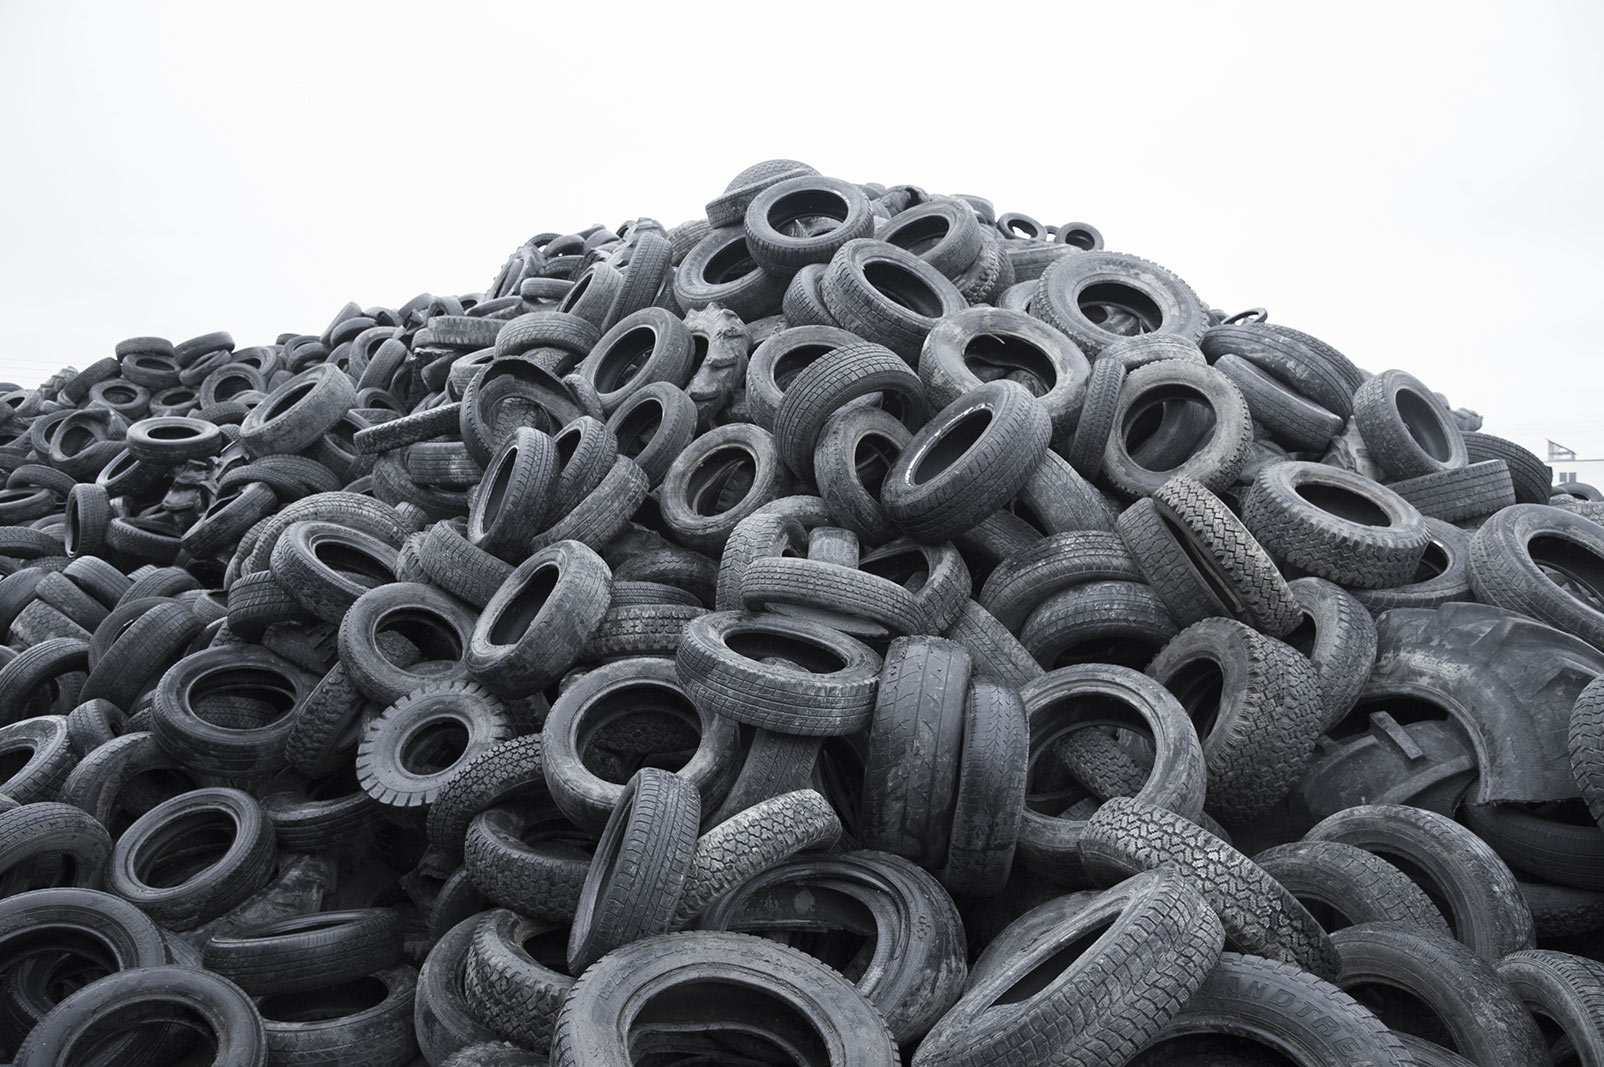 Waste tires is a large global environmetal problem. How can they be recycled?